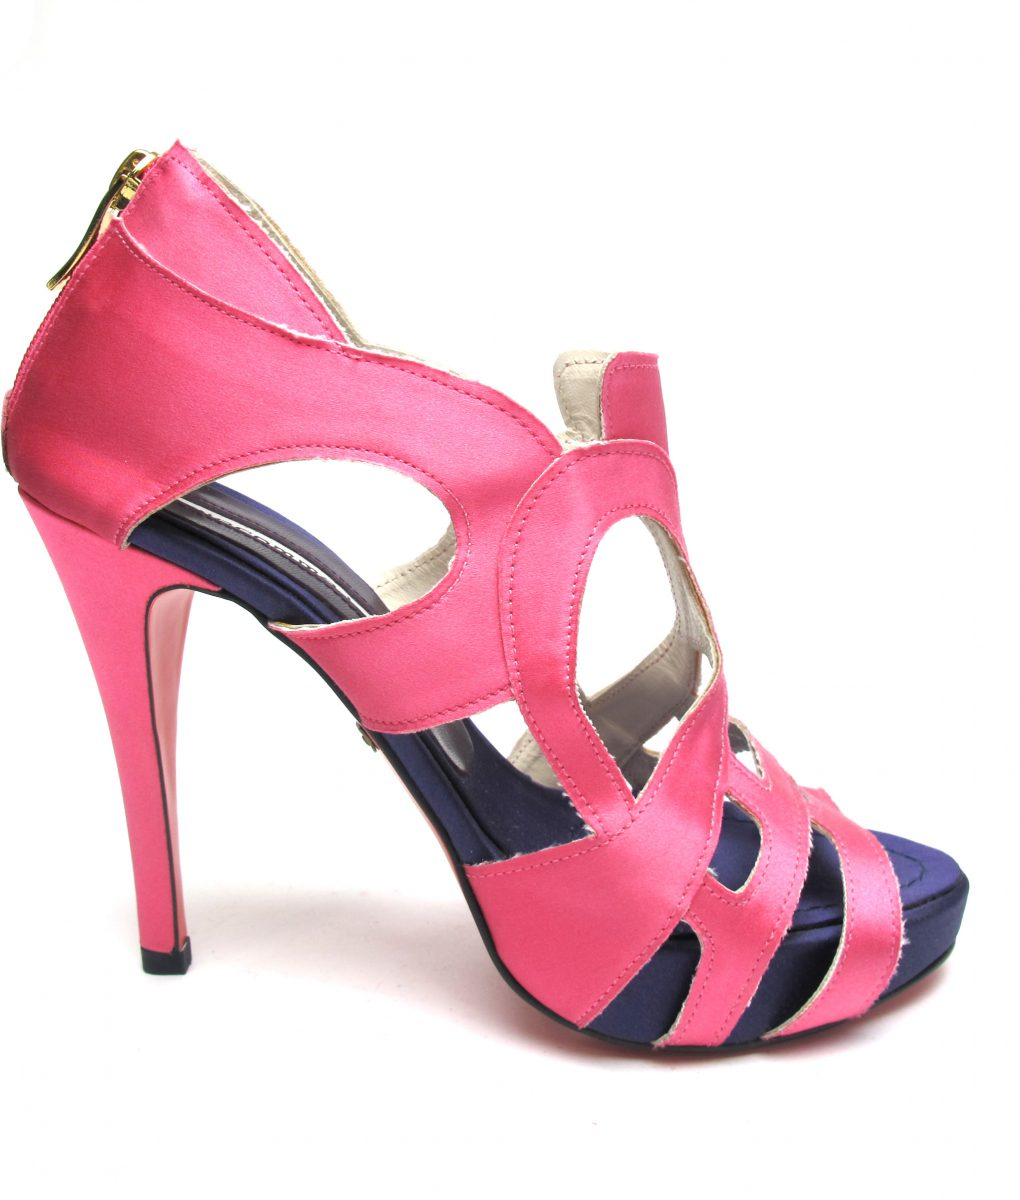 Suecomma Bonnie Pink & Purple Cutout Heels